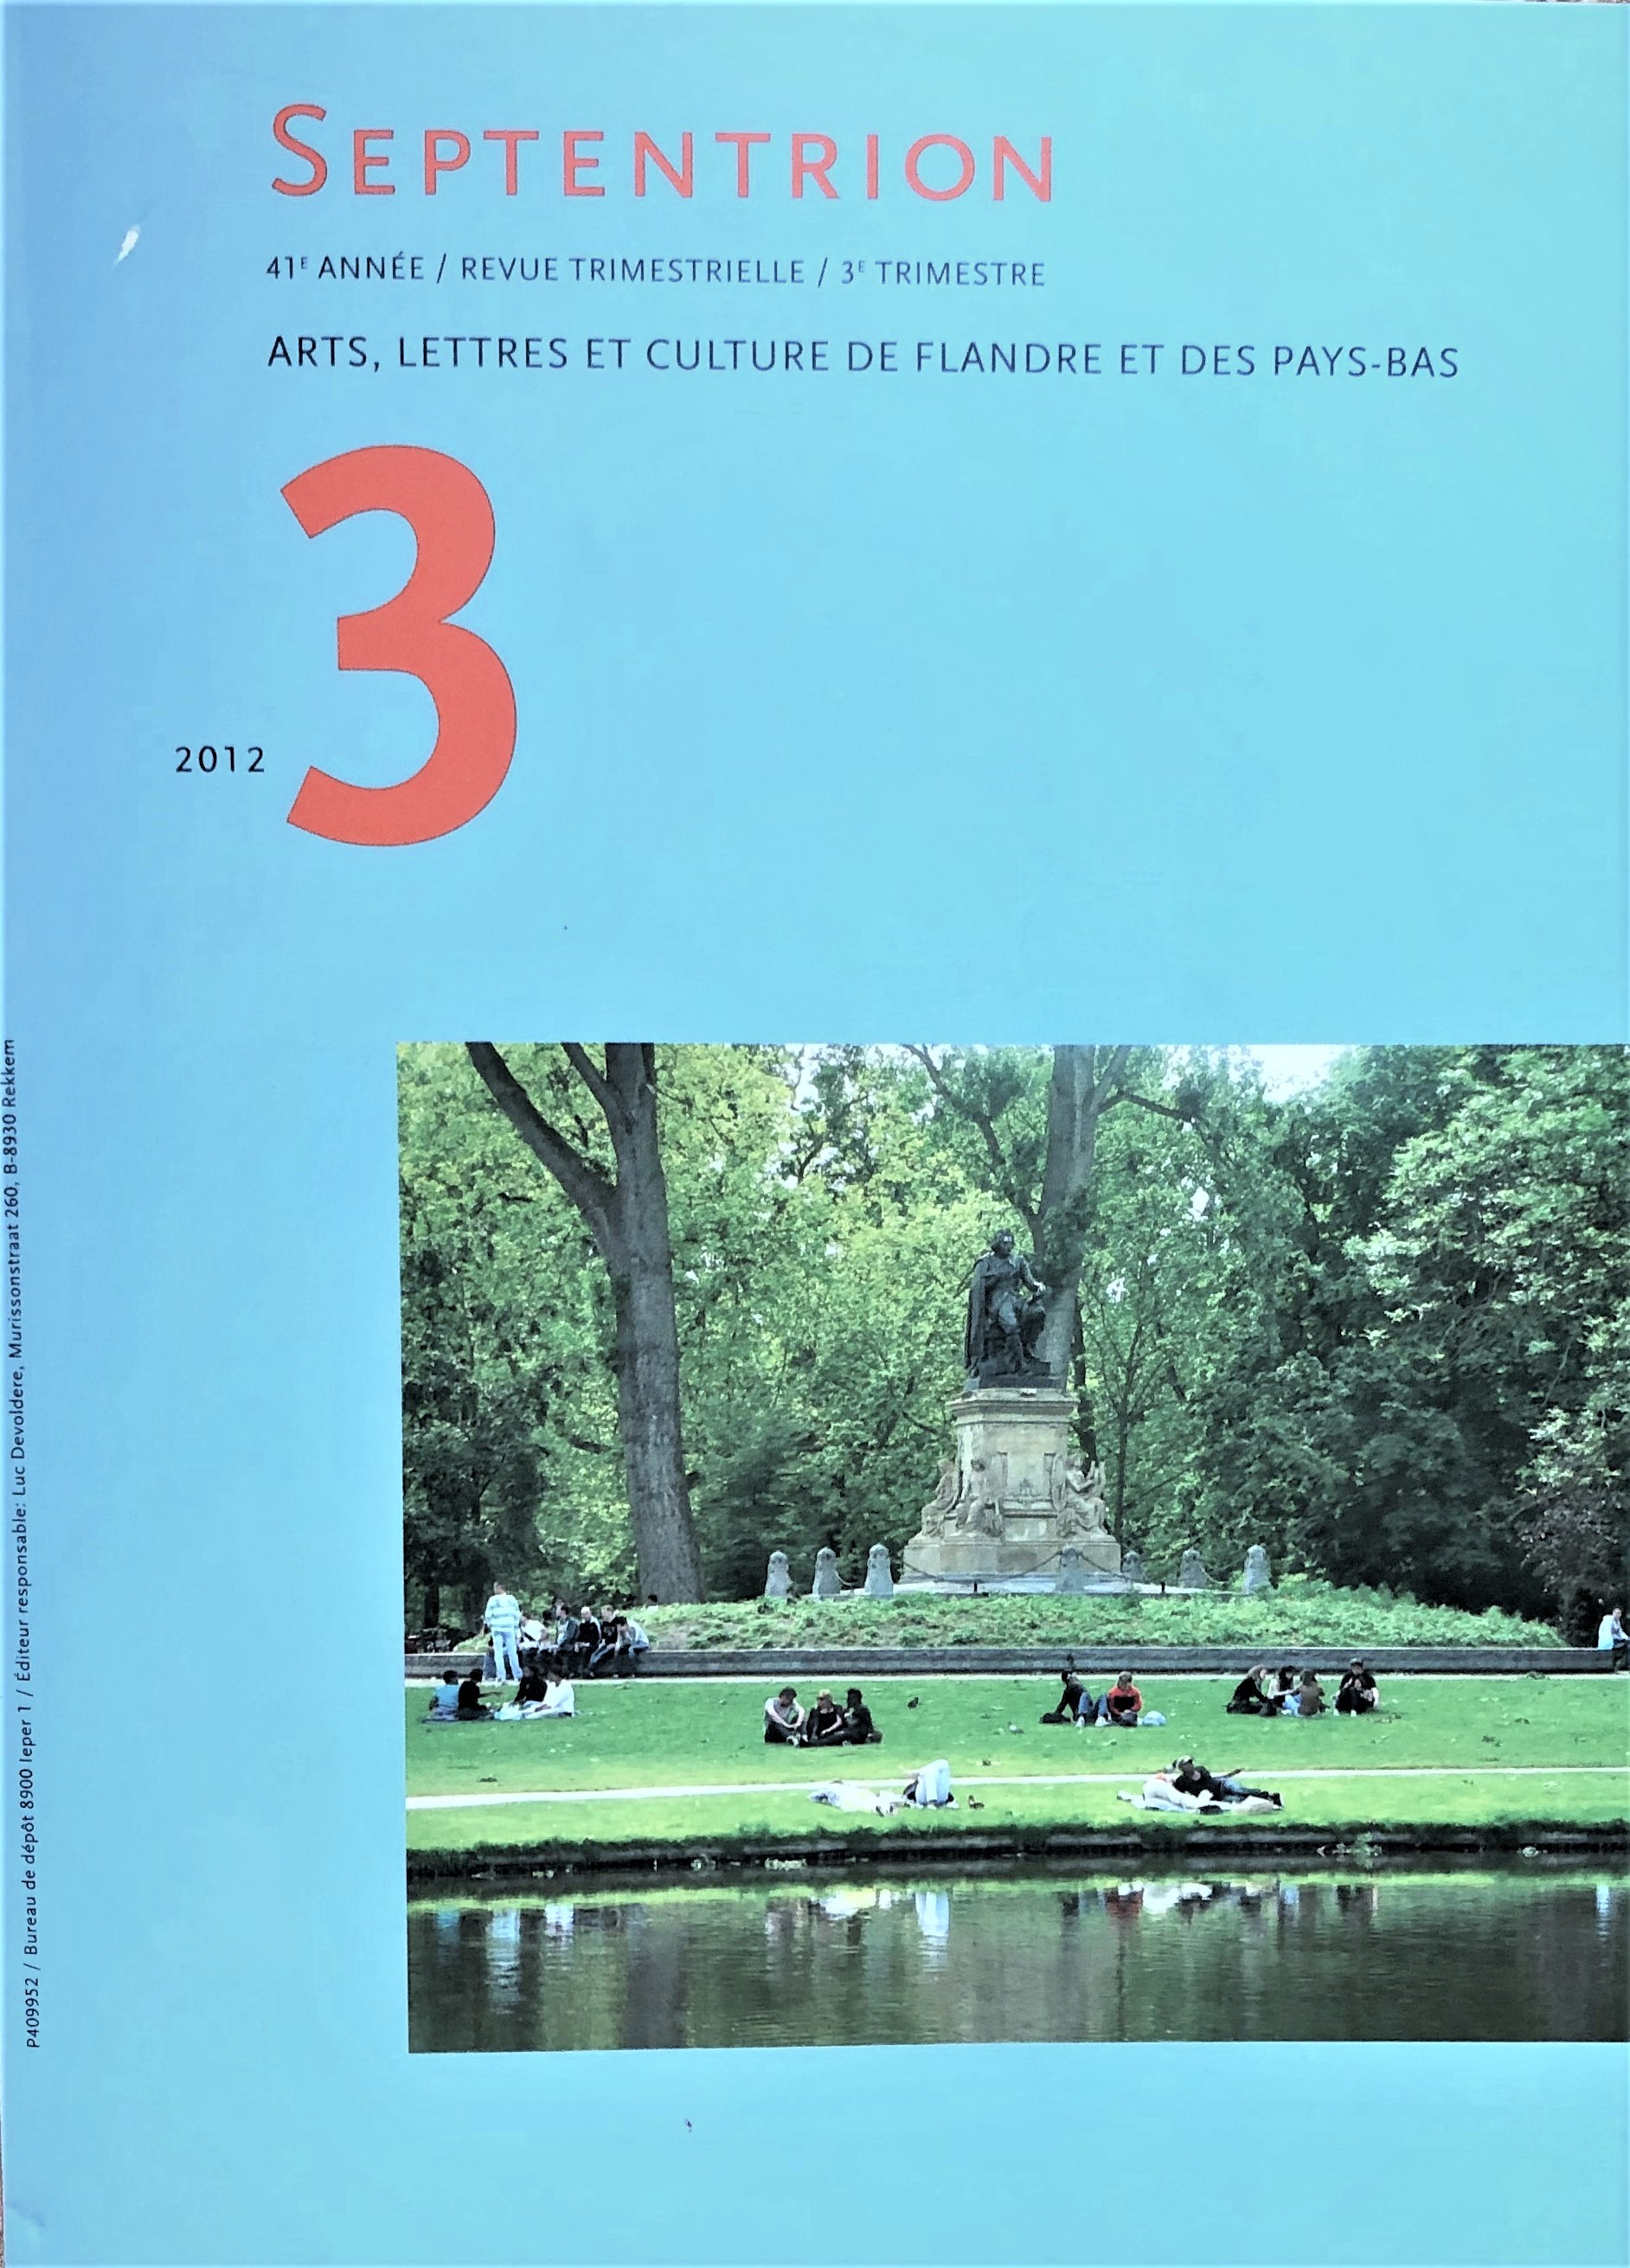 only recently found review (Septentrion, 2012) on book 'Hoogtij langs de Seine'